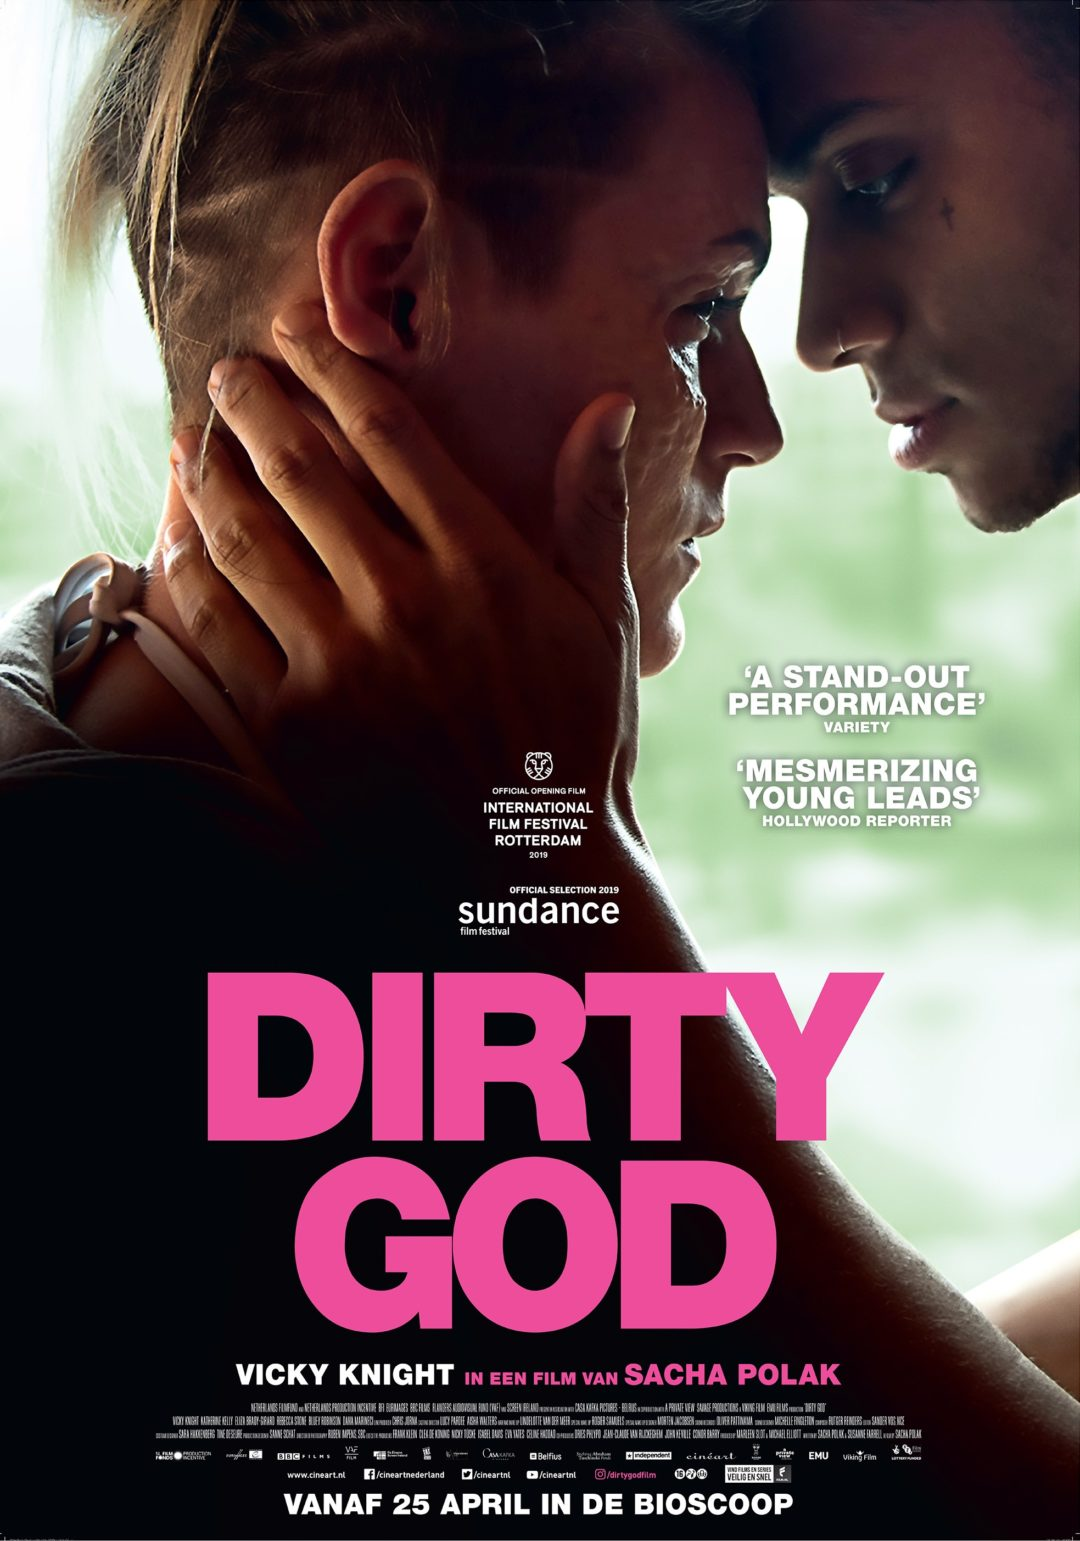 Dirty-God_ps_1_jpg_sd-high.jpg